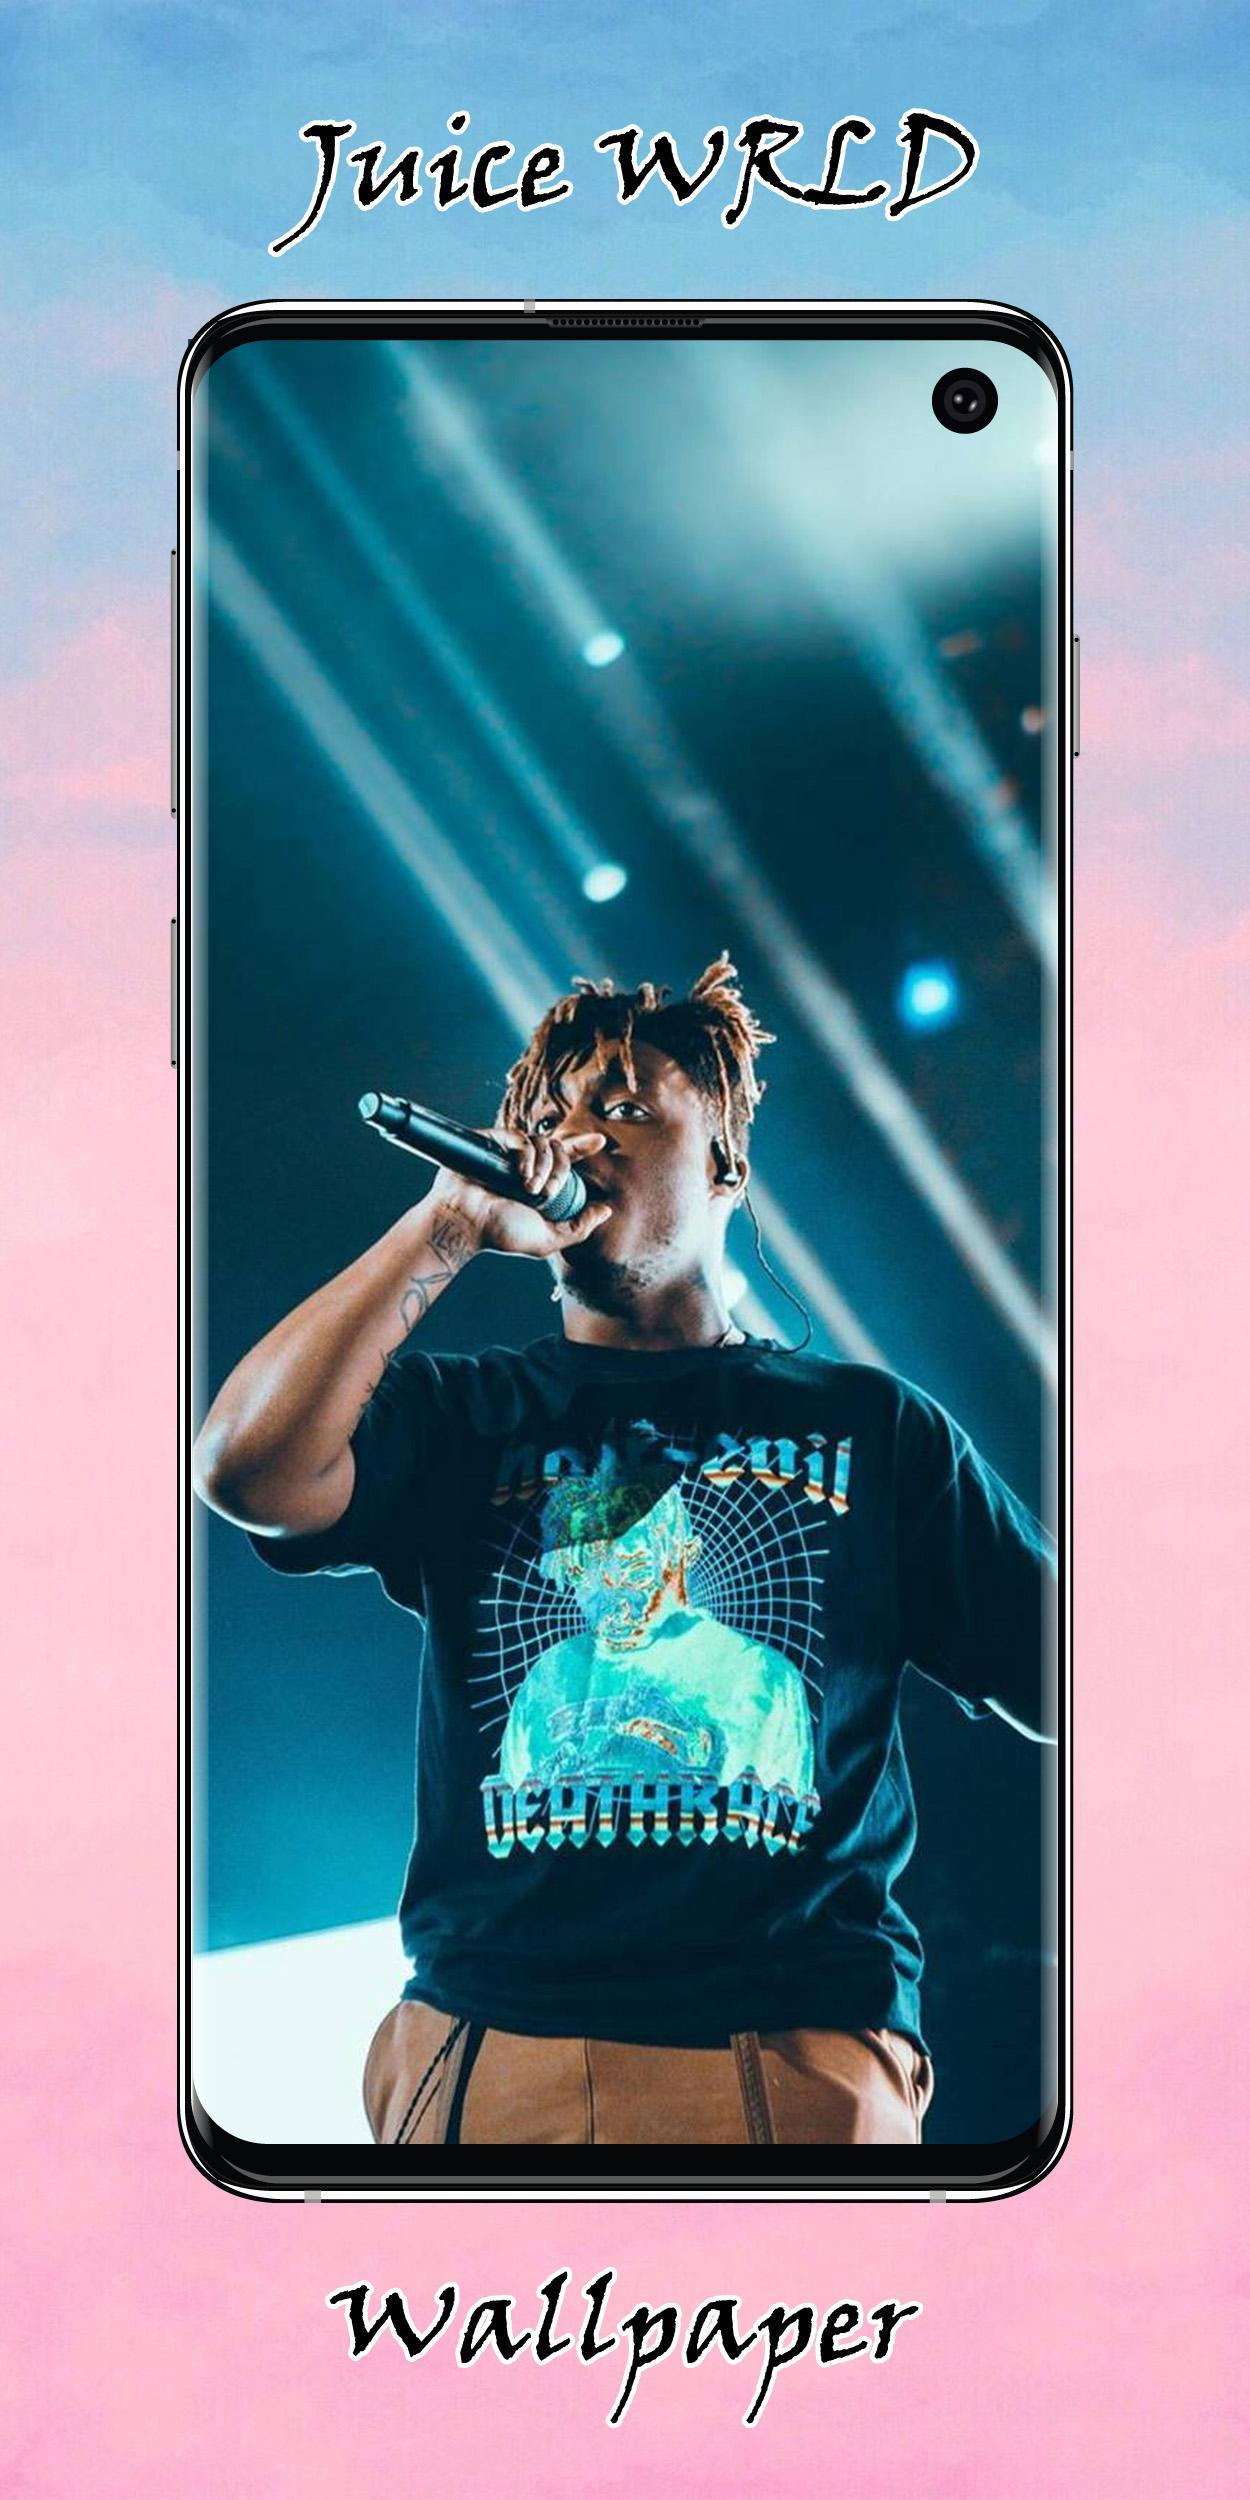 Rip Juice Wrld Wallpapers Hd For Android Apk Download